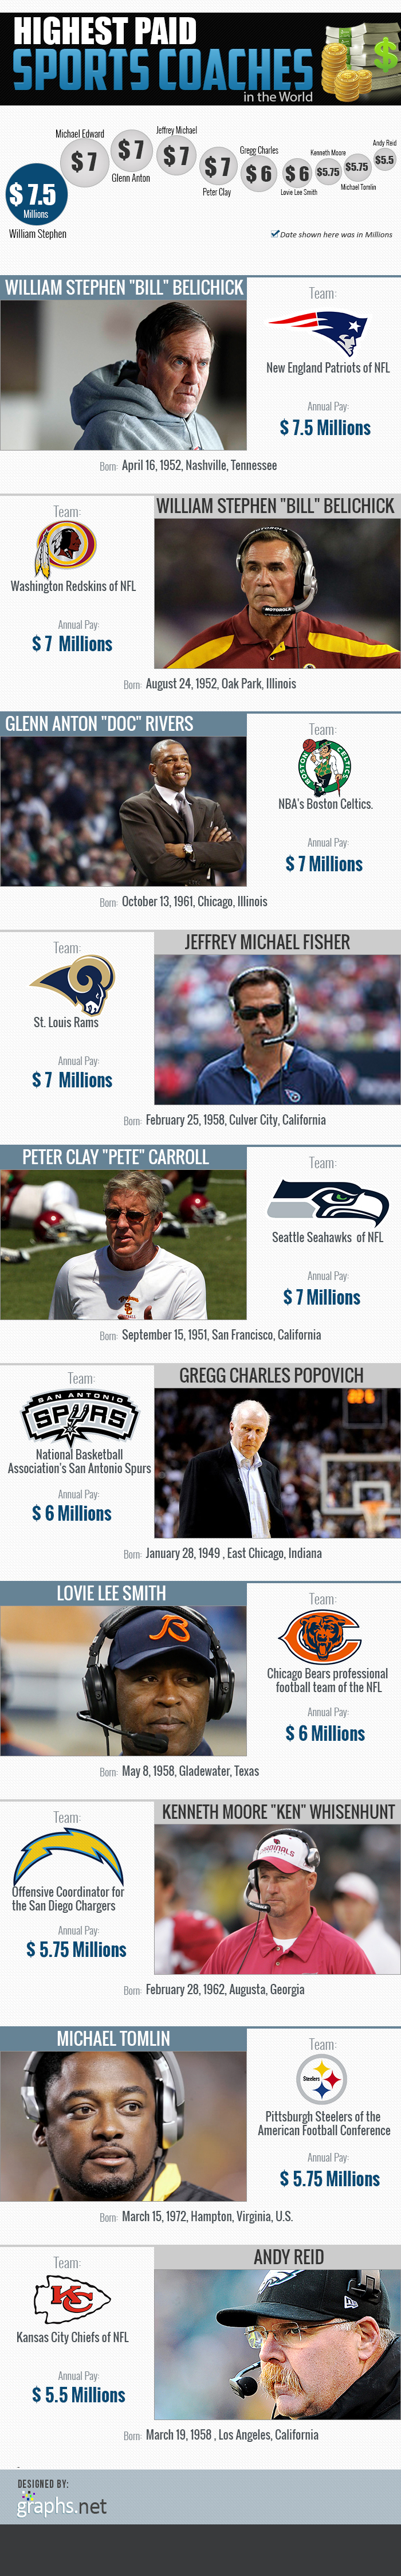 Highest Paid Sports Coaches in the World